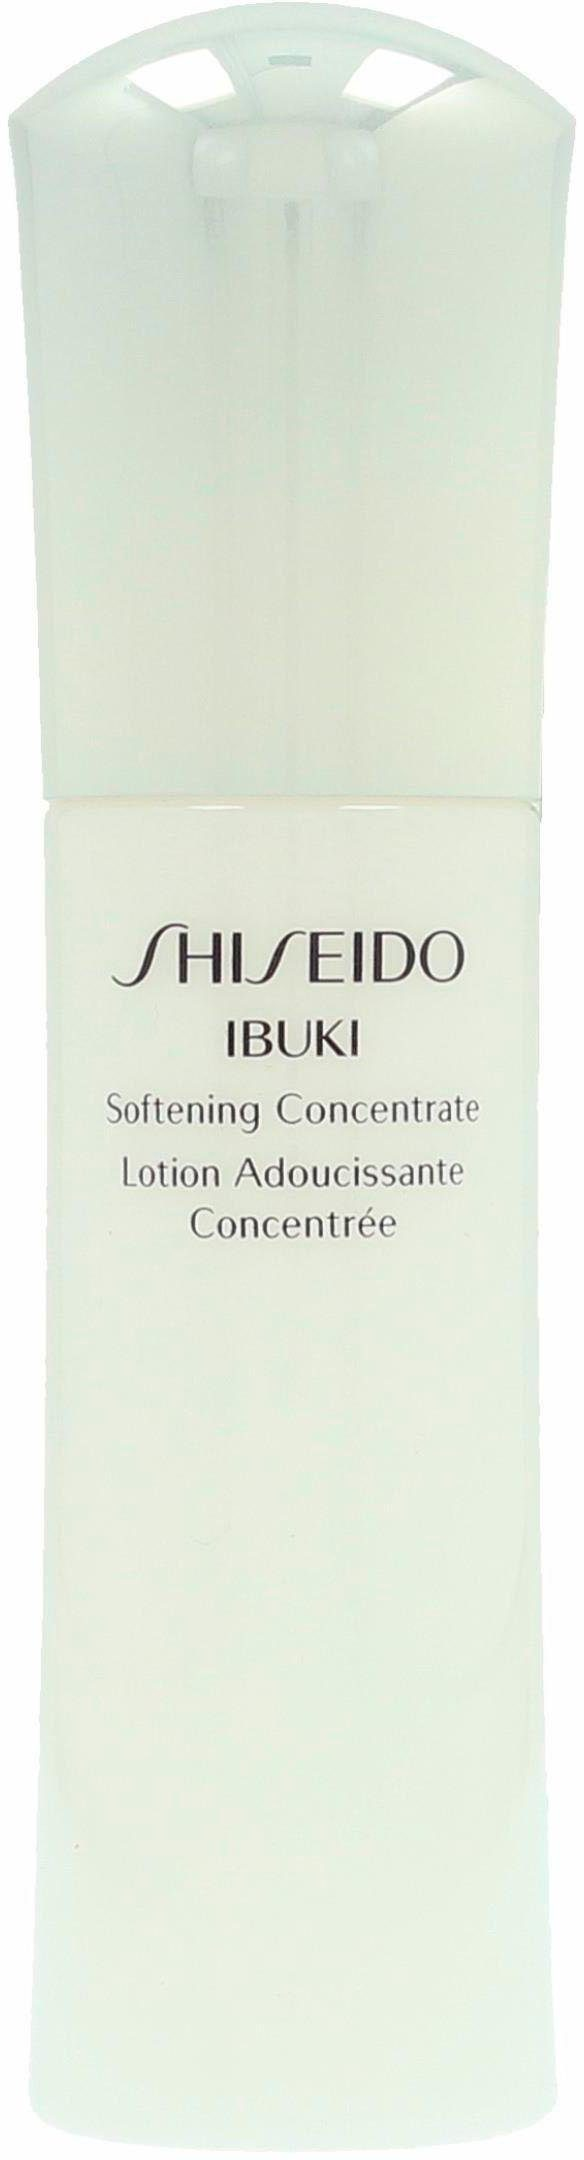 Shiseido, »Ibuki Softening Concentrate«, Gesichtslotion